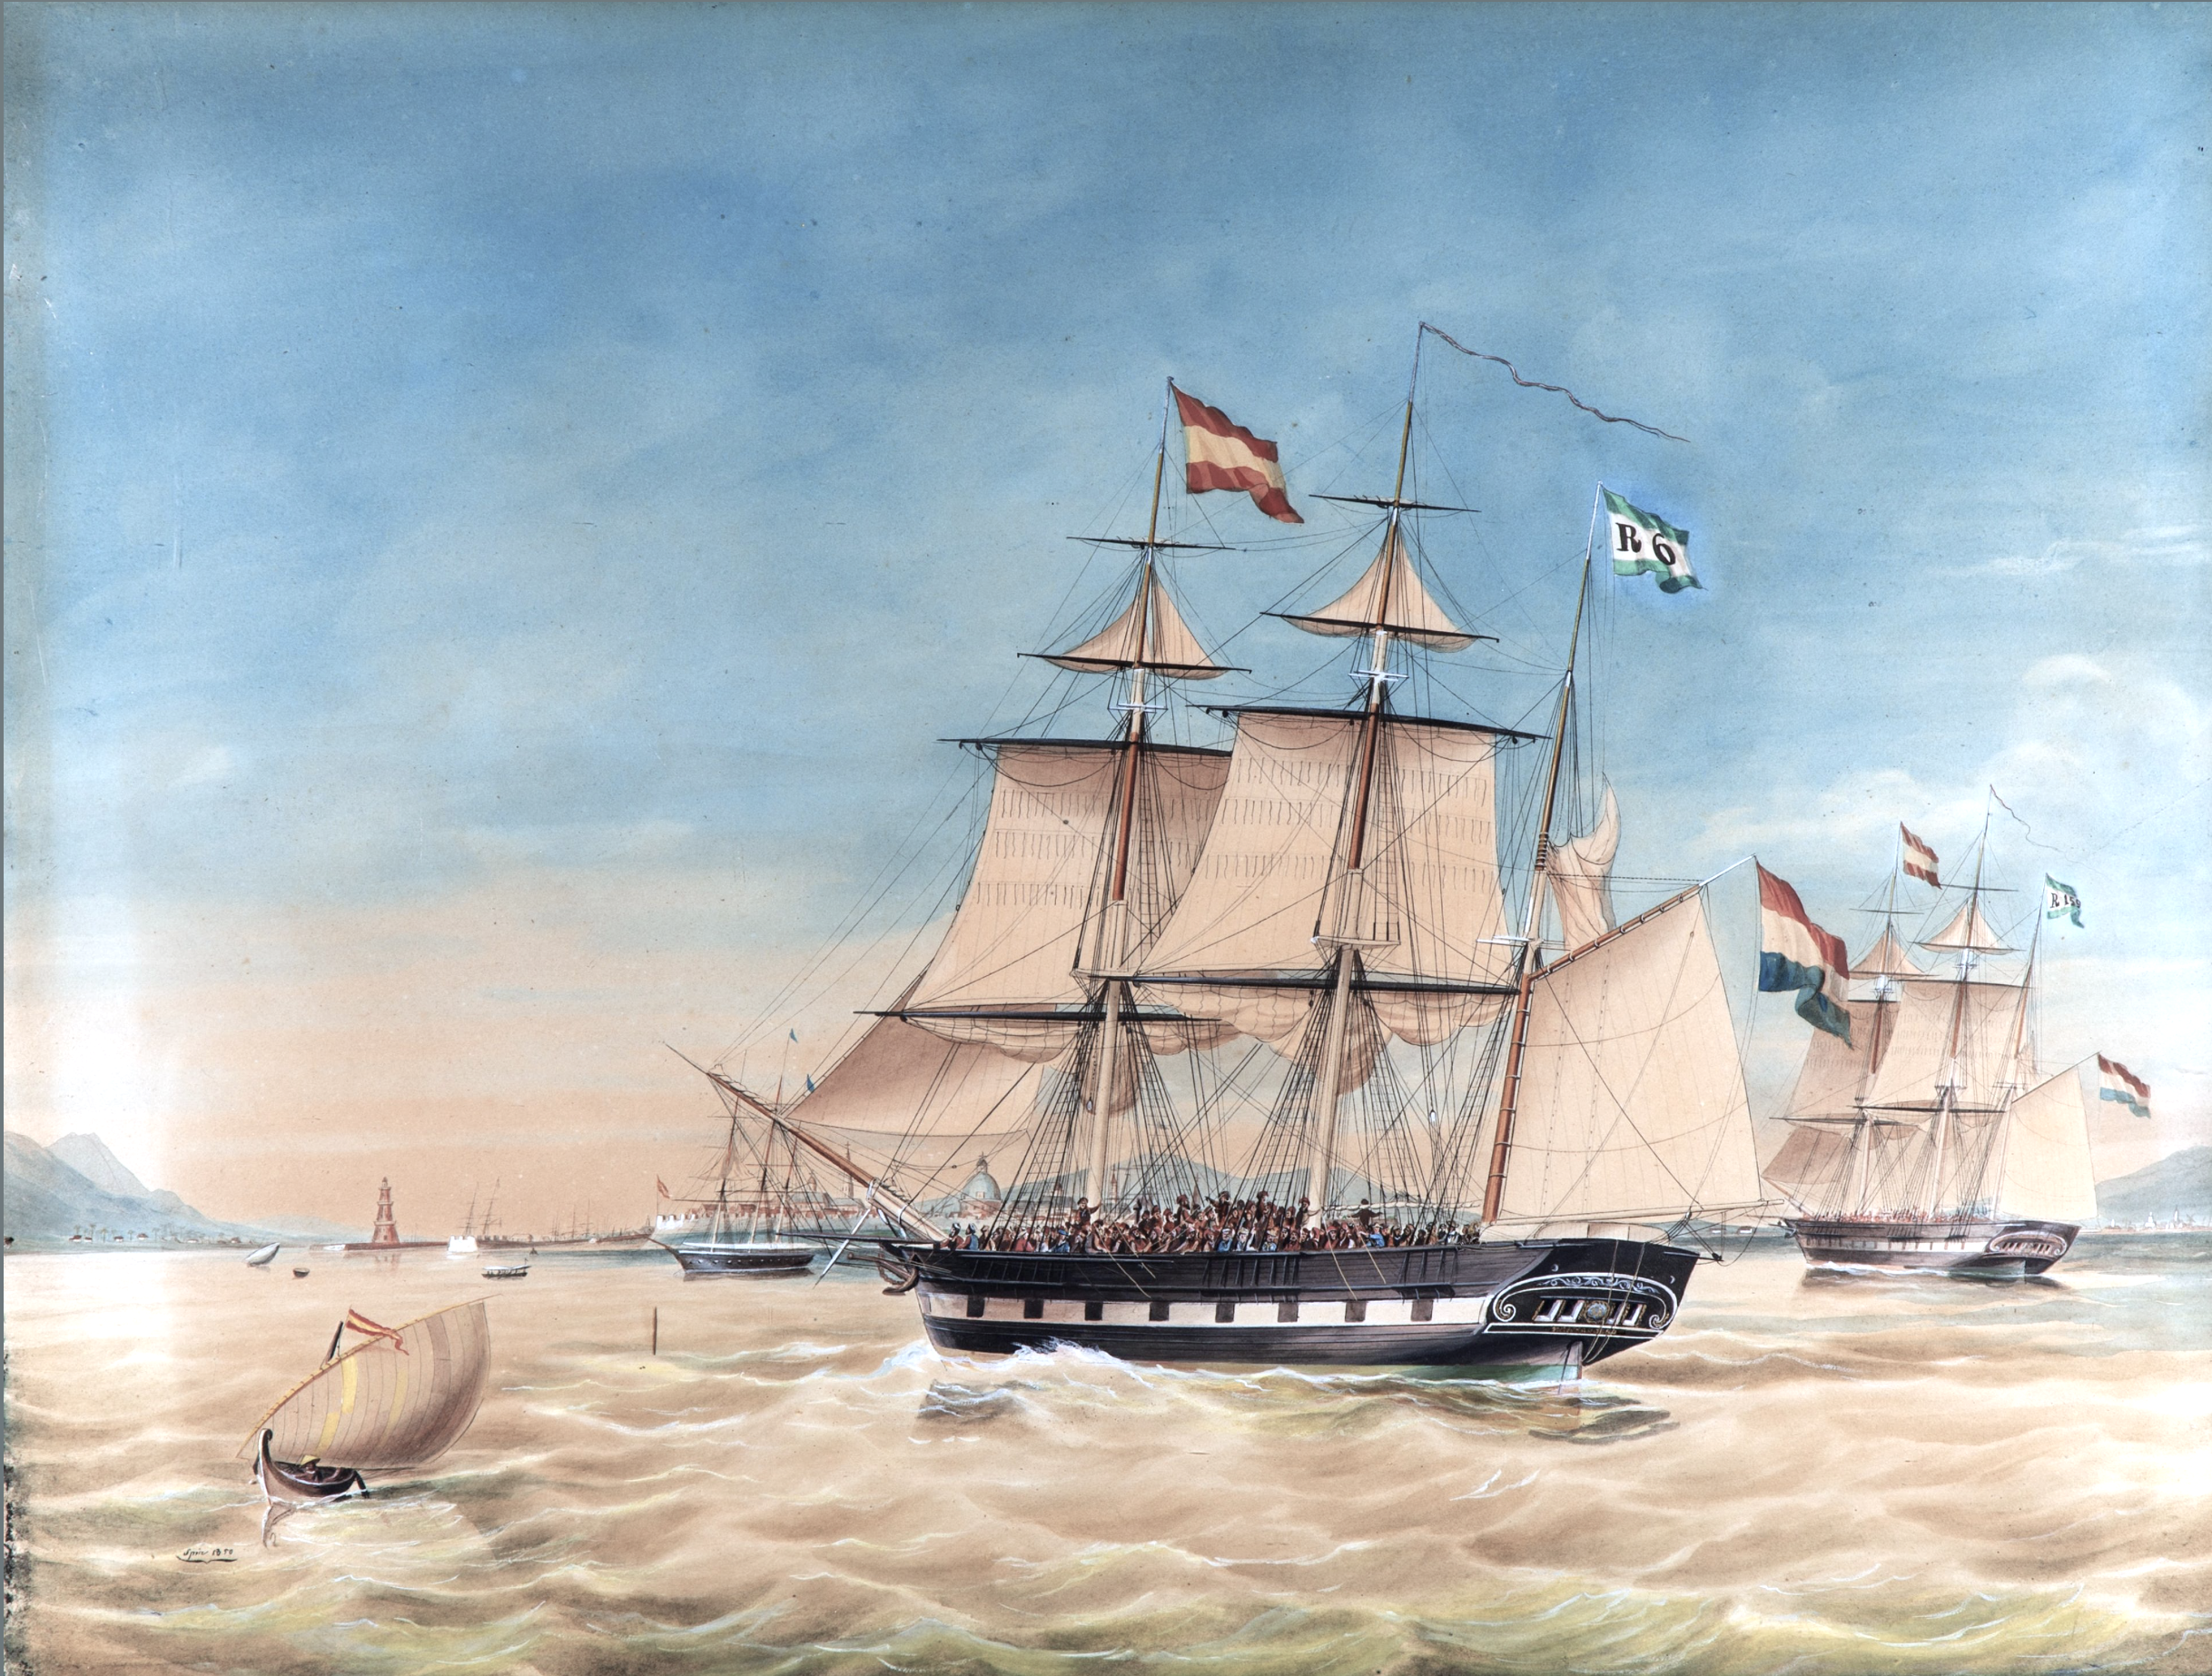 Rotterdam barques Reijerwaard and Gouverneur Generaal Rochussen, commanded by captains Wierikx and Rijken, arriving in Manila, Philippines with over 300 Spanish deportees of the 1848 uprisings.